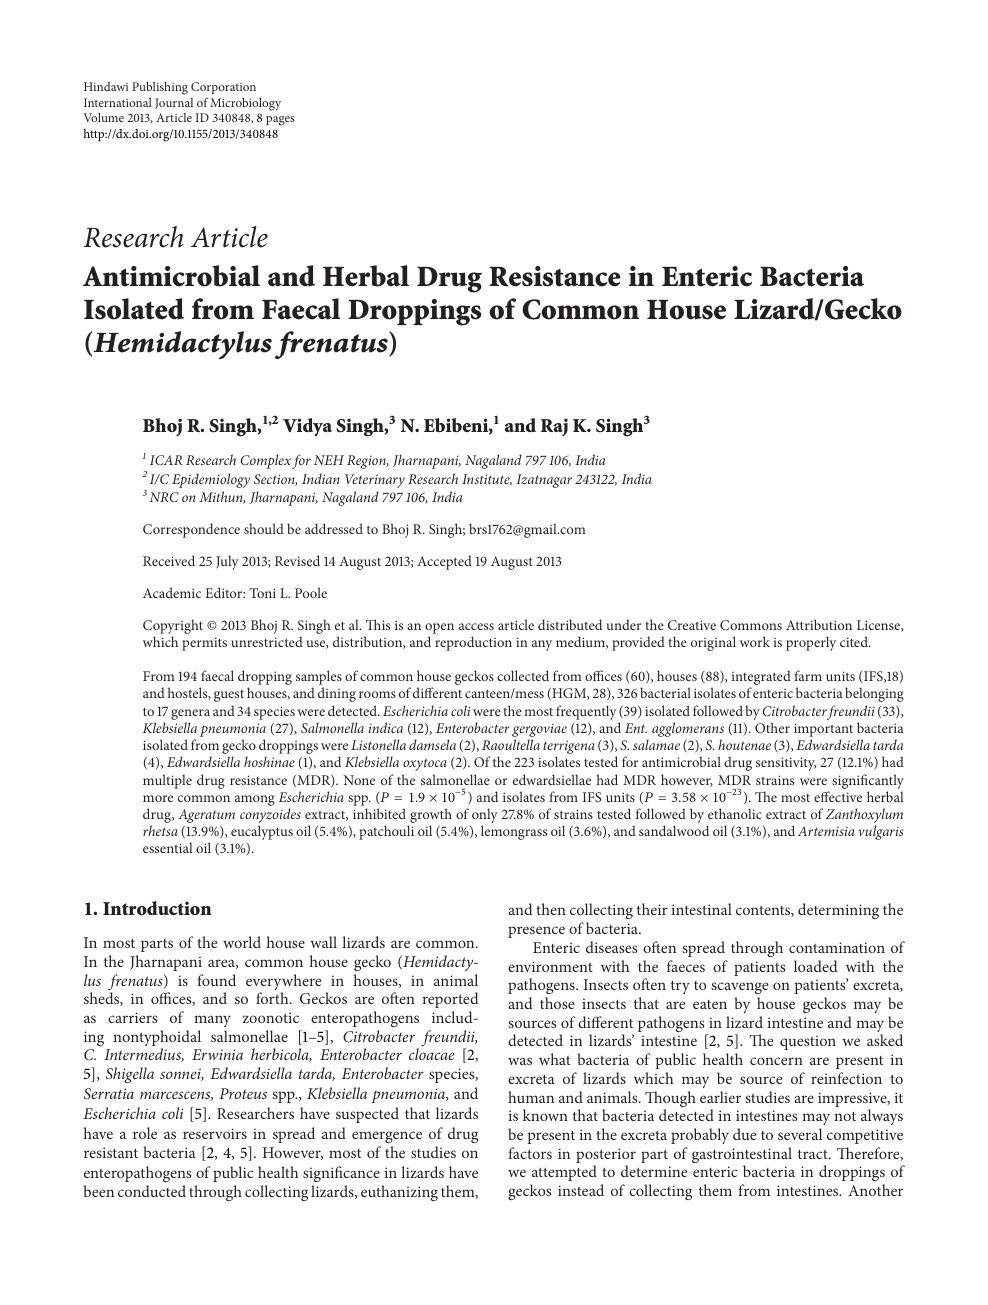 Antimicrobial and Herbal Drug Resistance in Enteric Bacteria